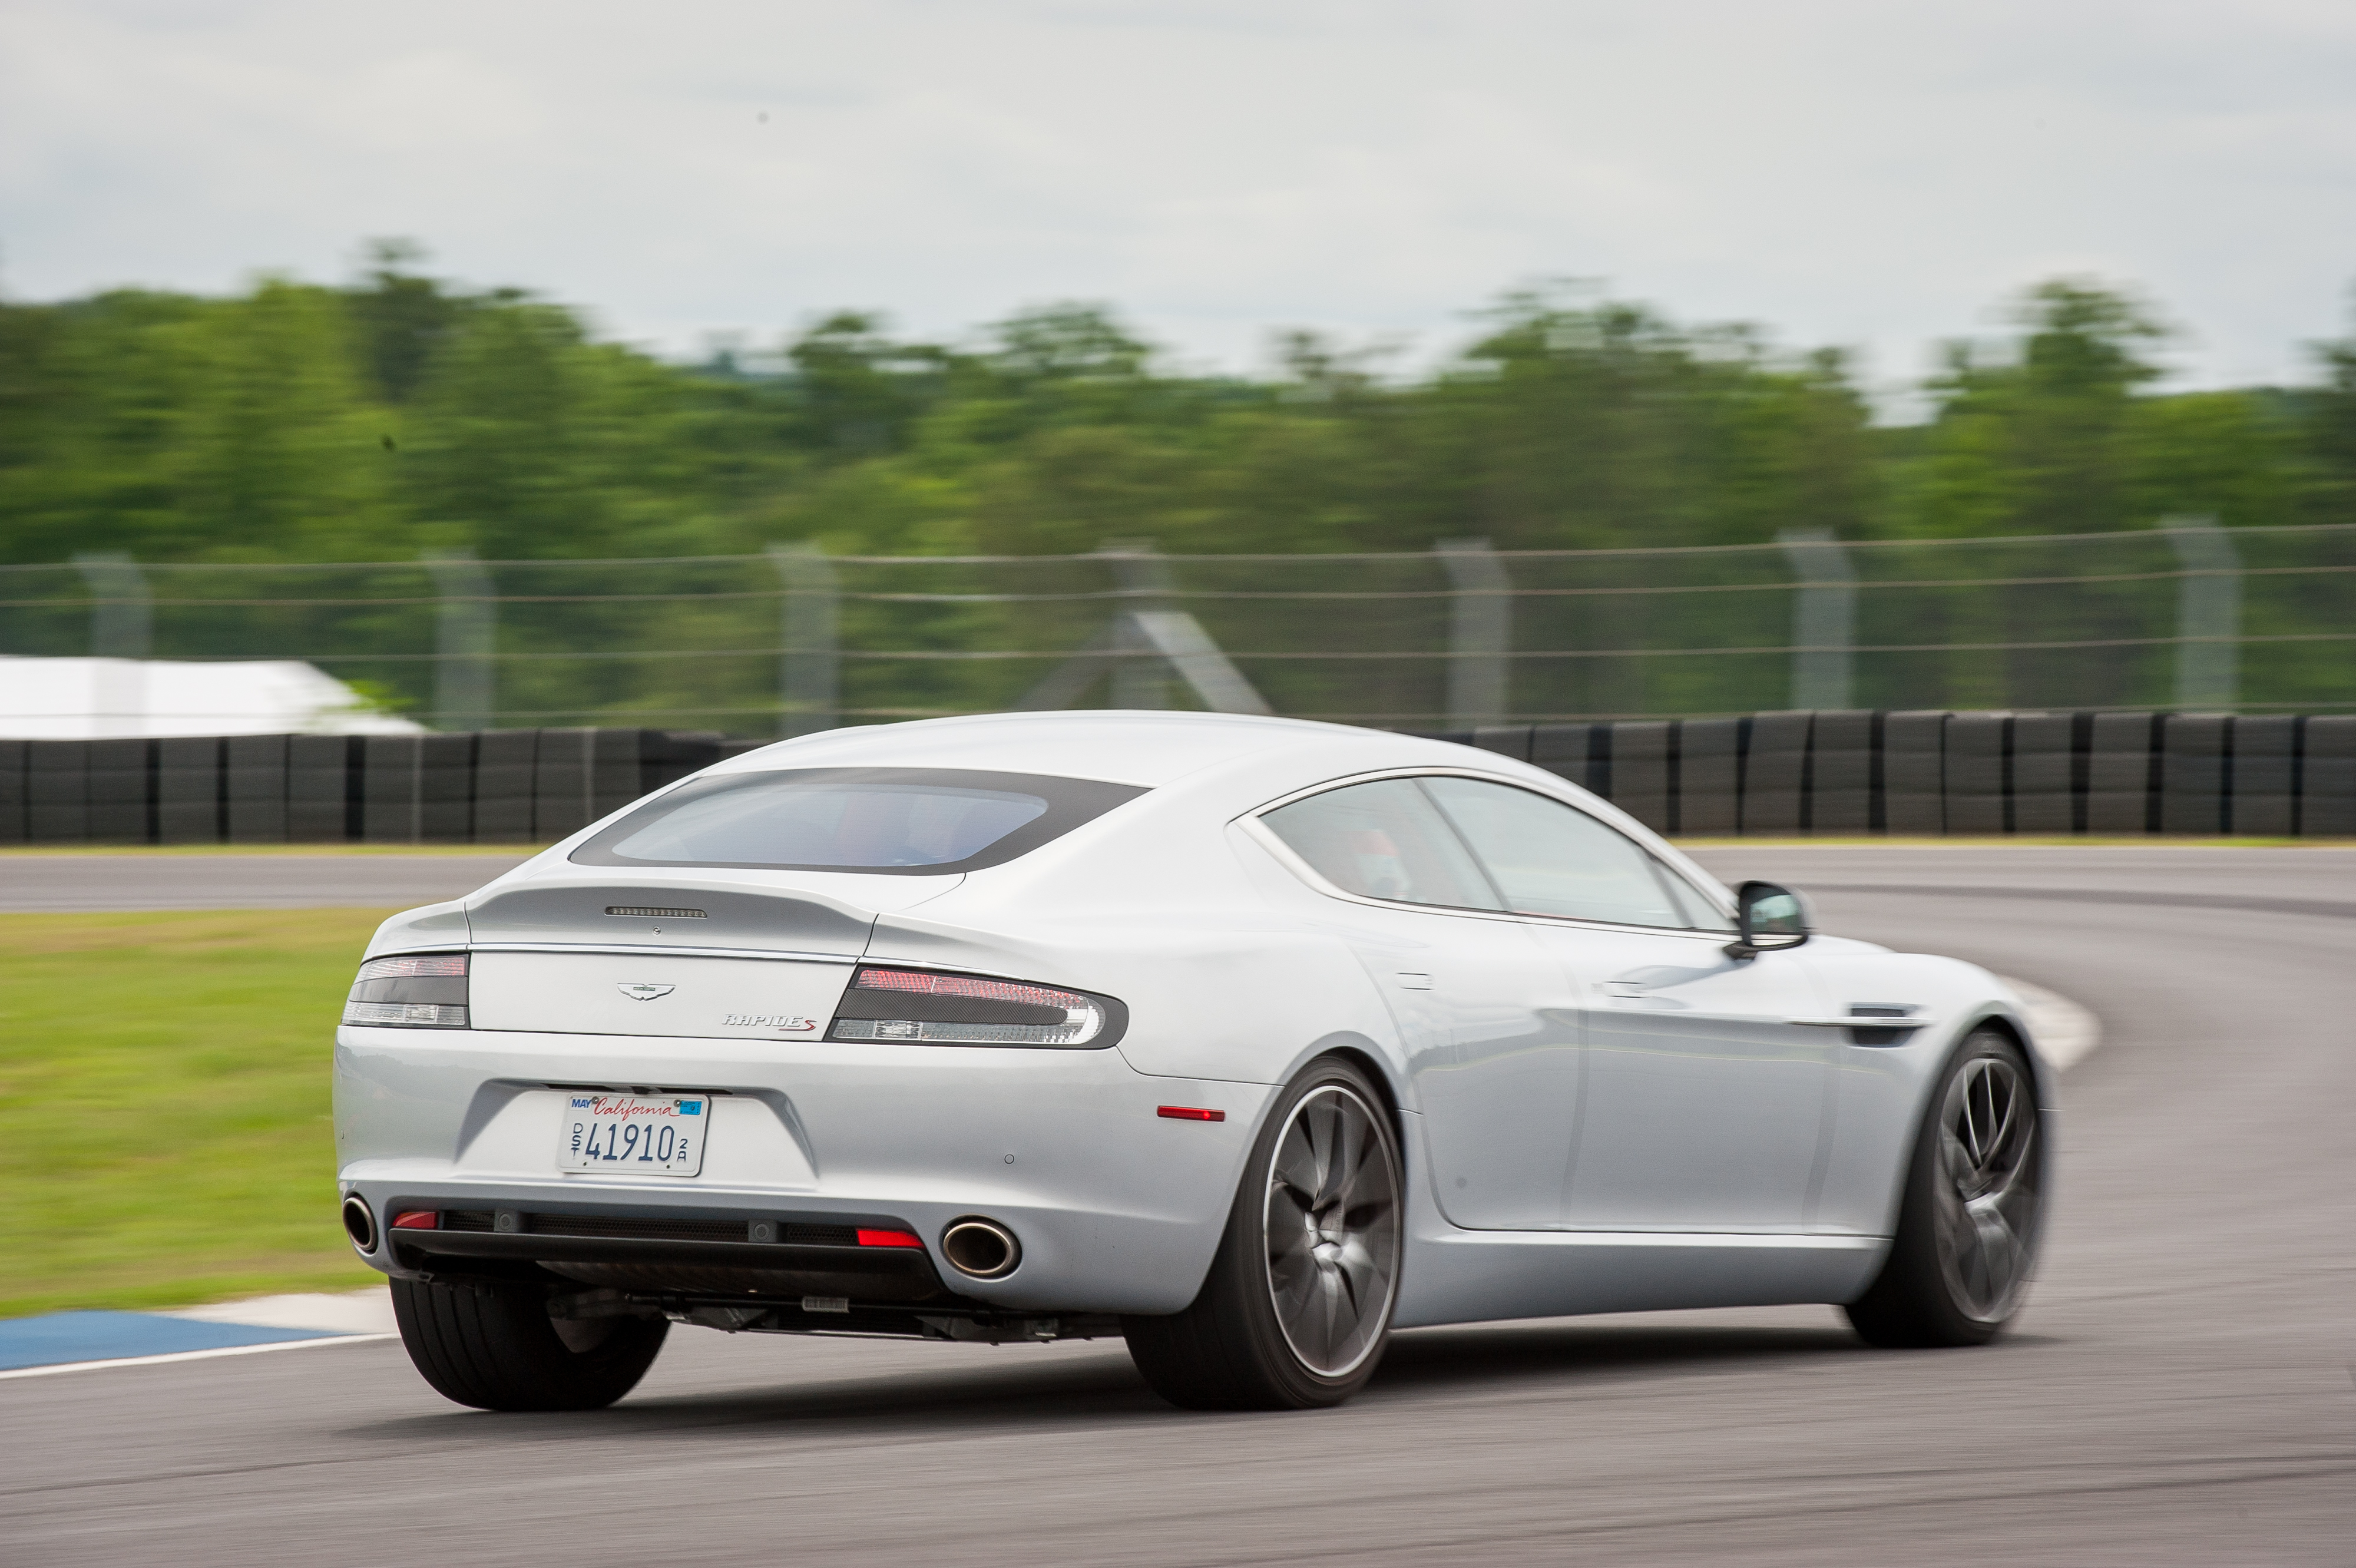 rapide s – Automobile Wallpapers in HD | Iphone,| Android,| Desktop 18 Wallpaper